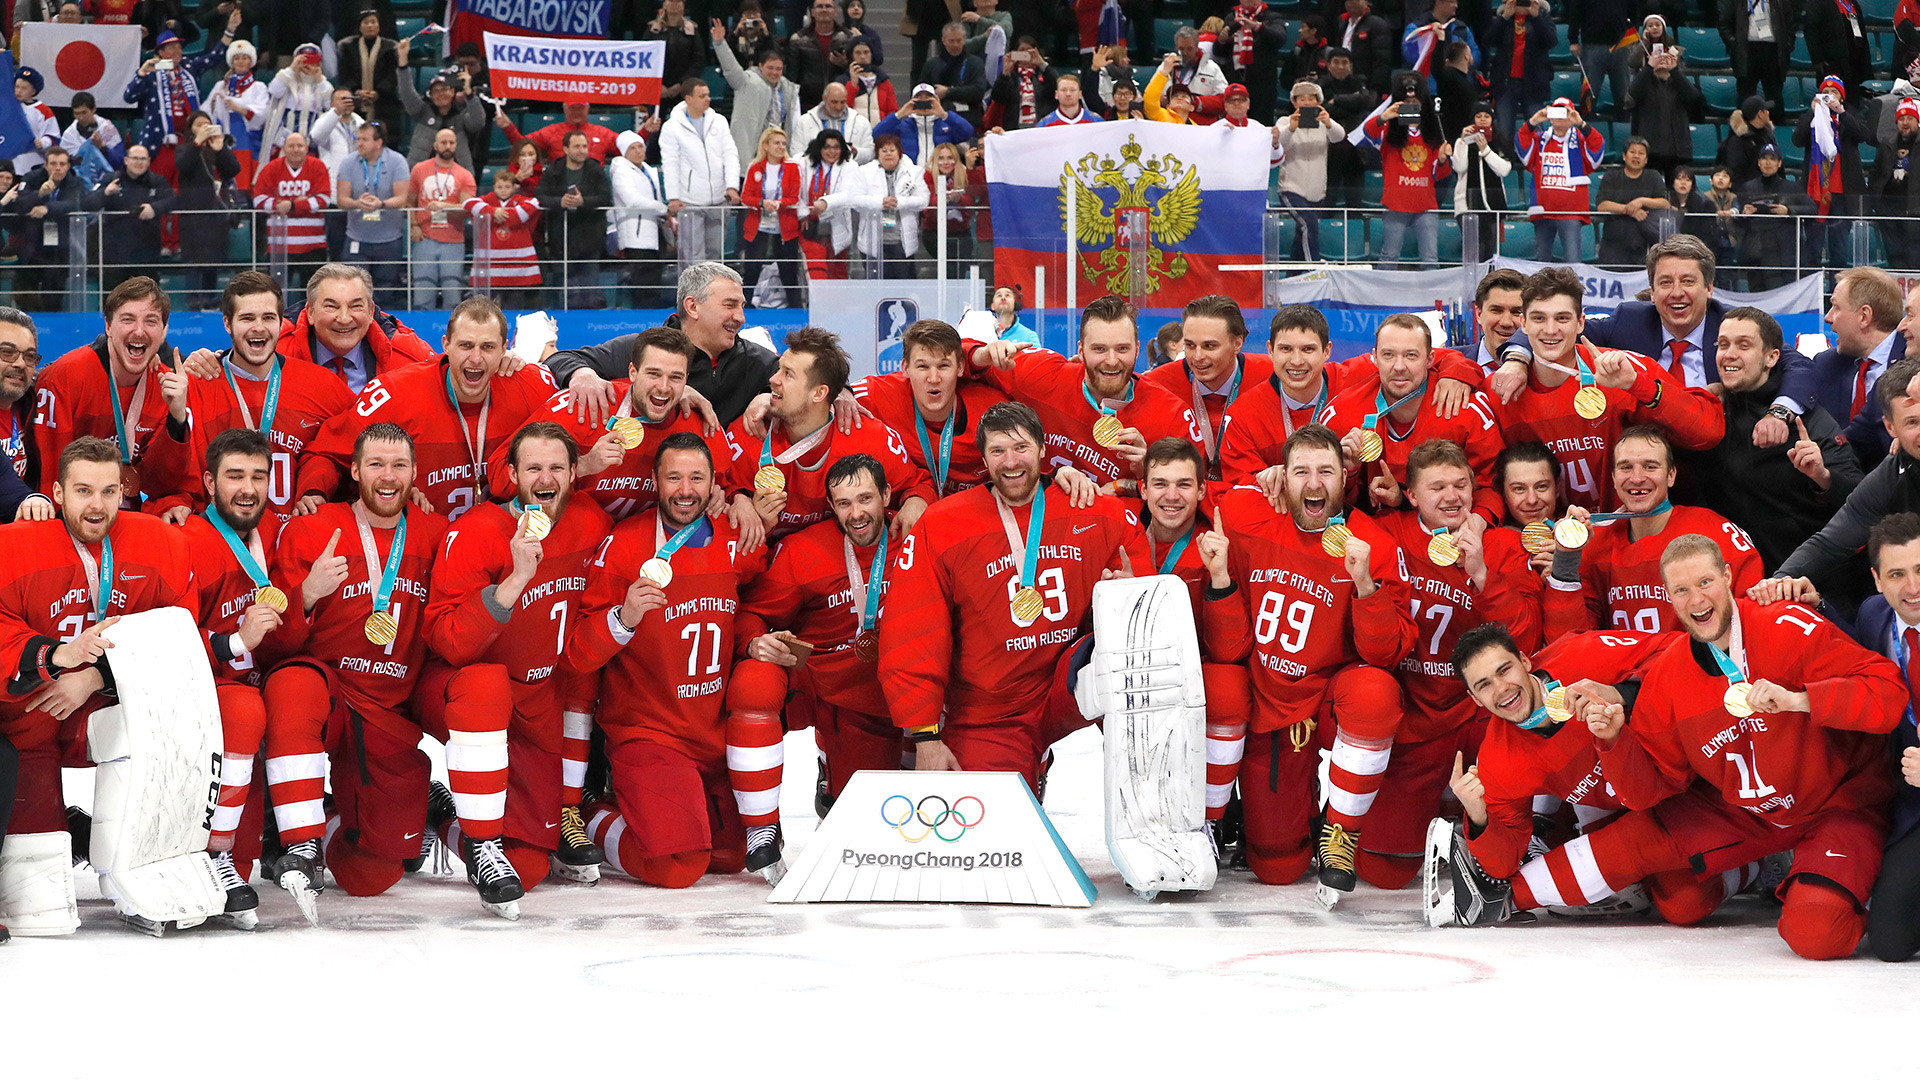 Men ice hockey team from Russia